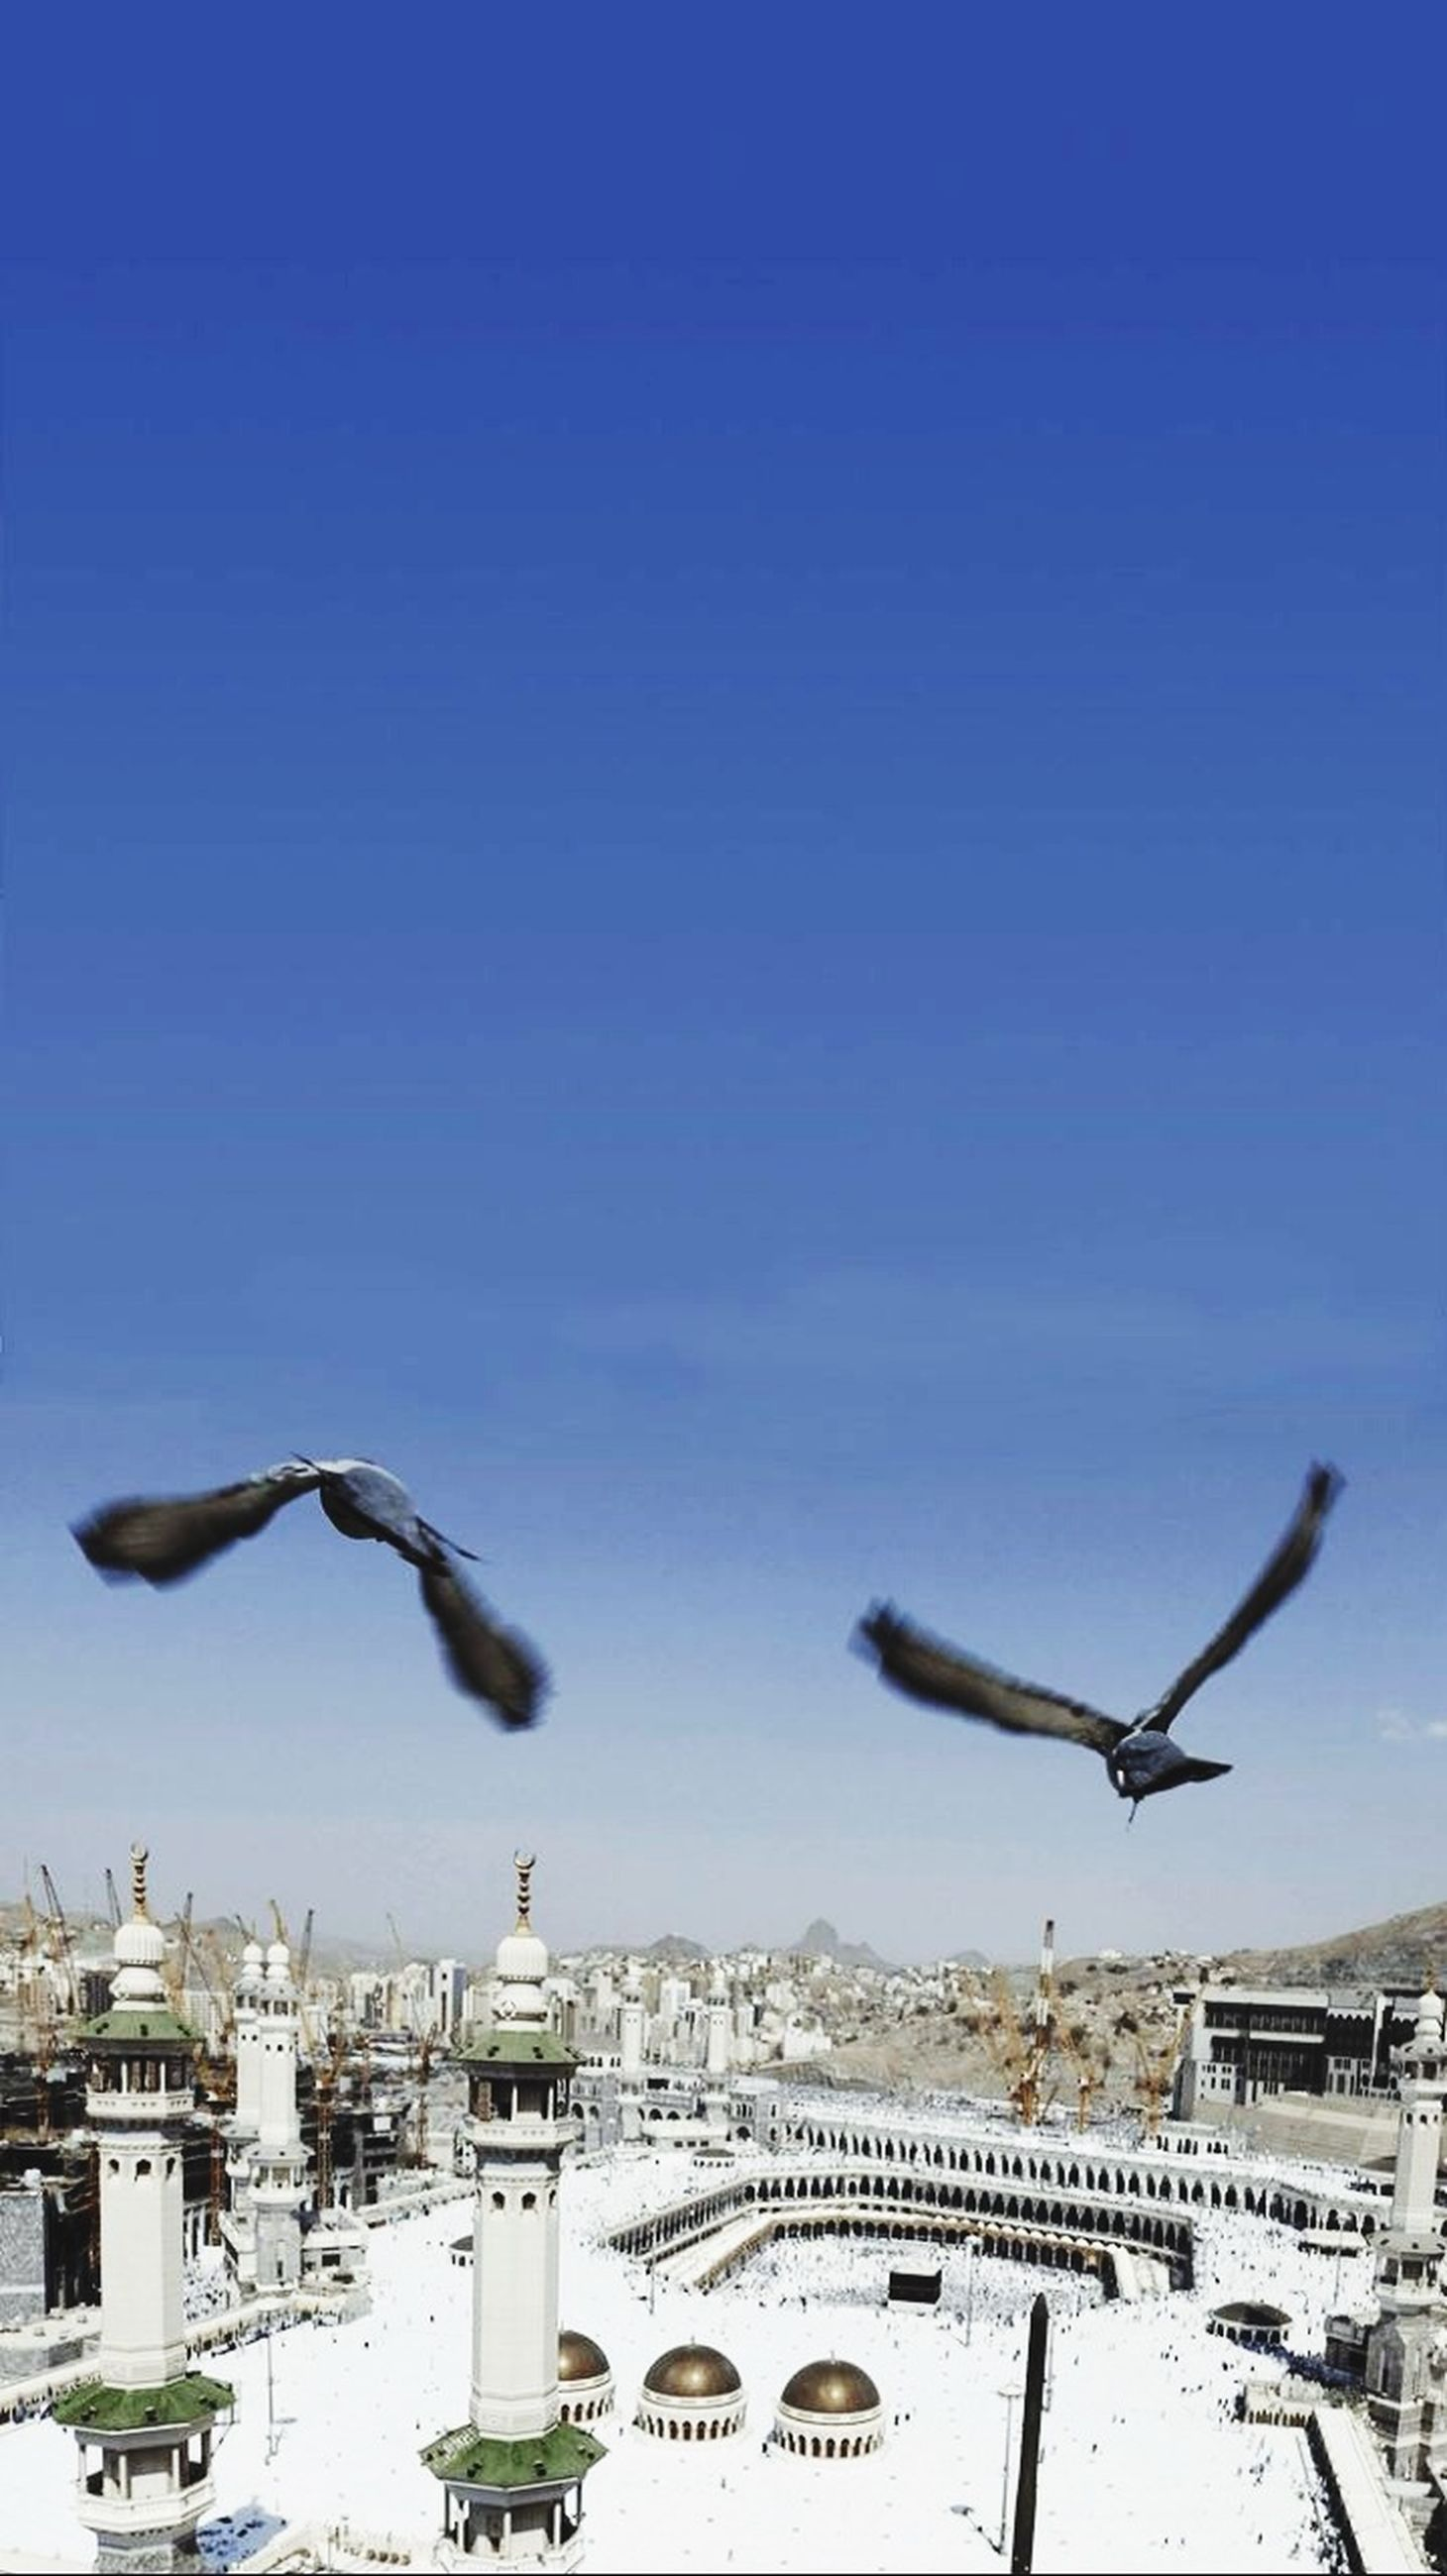 bird, flying, animals in the wild, animal themes, seagull, spread wings, wildlife, mid-air, architecture, built structure, blue, building exterior, clear sky, perching, sky, day, pigeon, low angle view, three animals, one animal